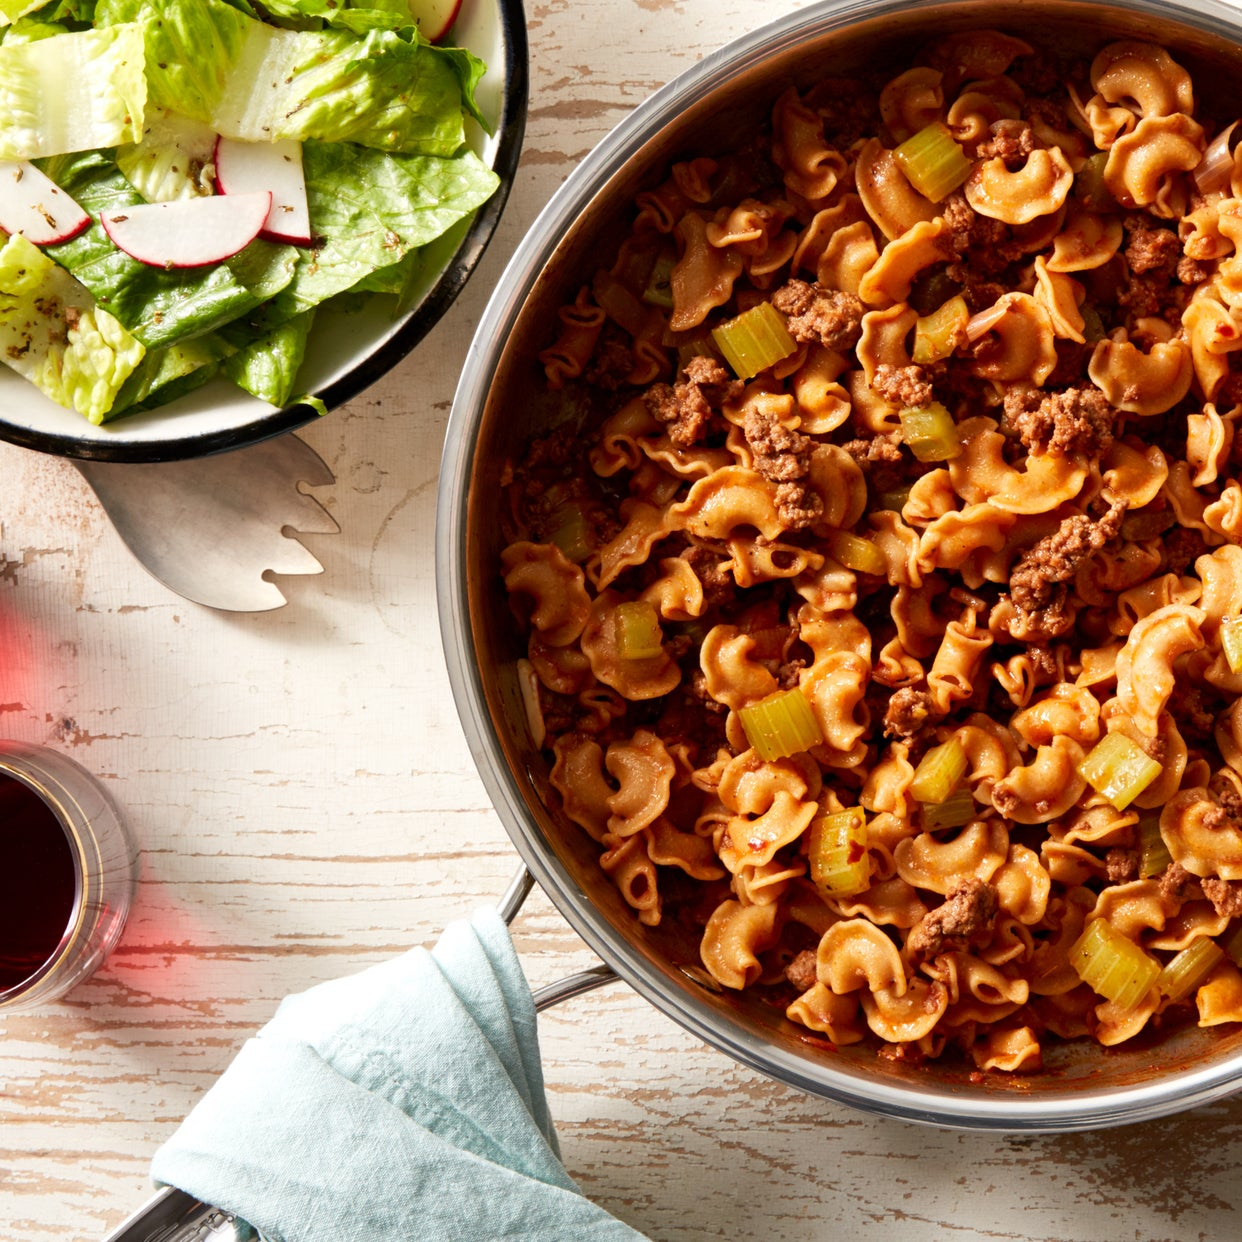 Whole Grain Pasta & Beef Bolognese with Romaine Salad